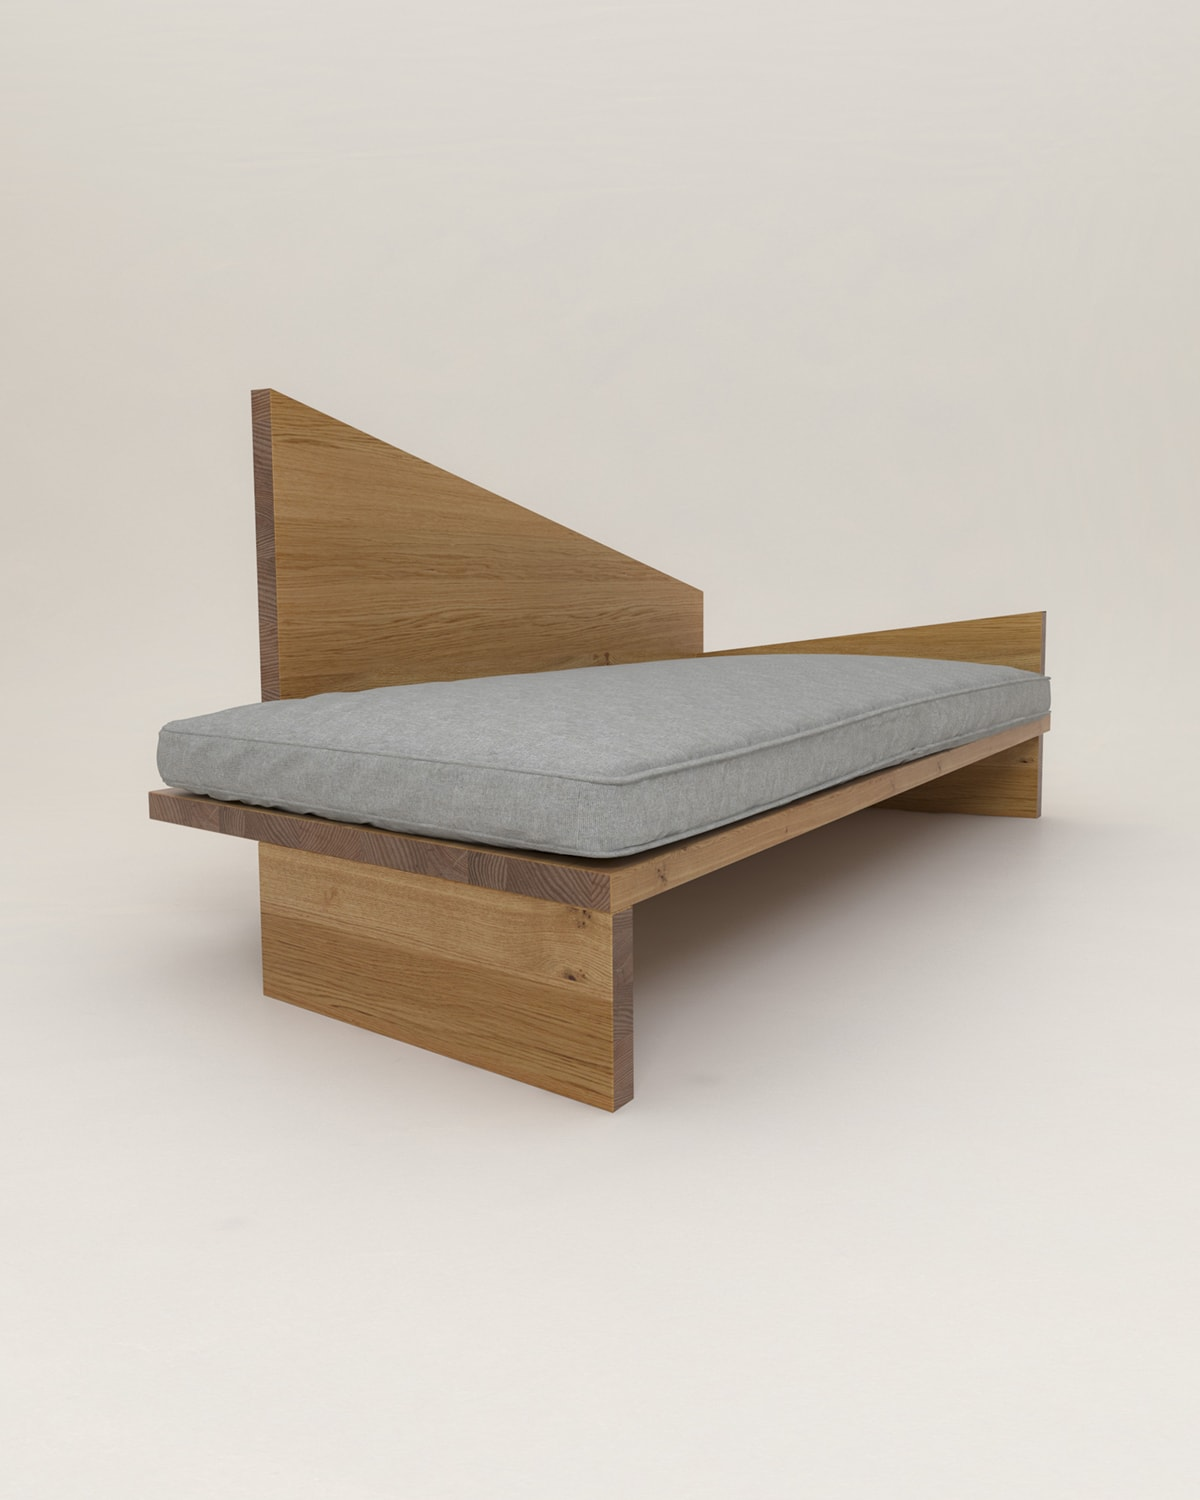 crooked_daybed_02_1